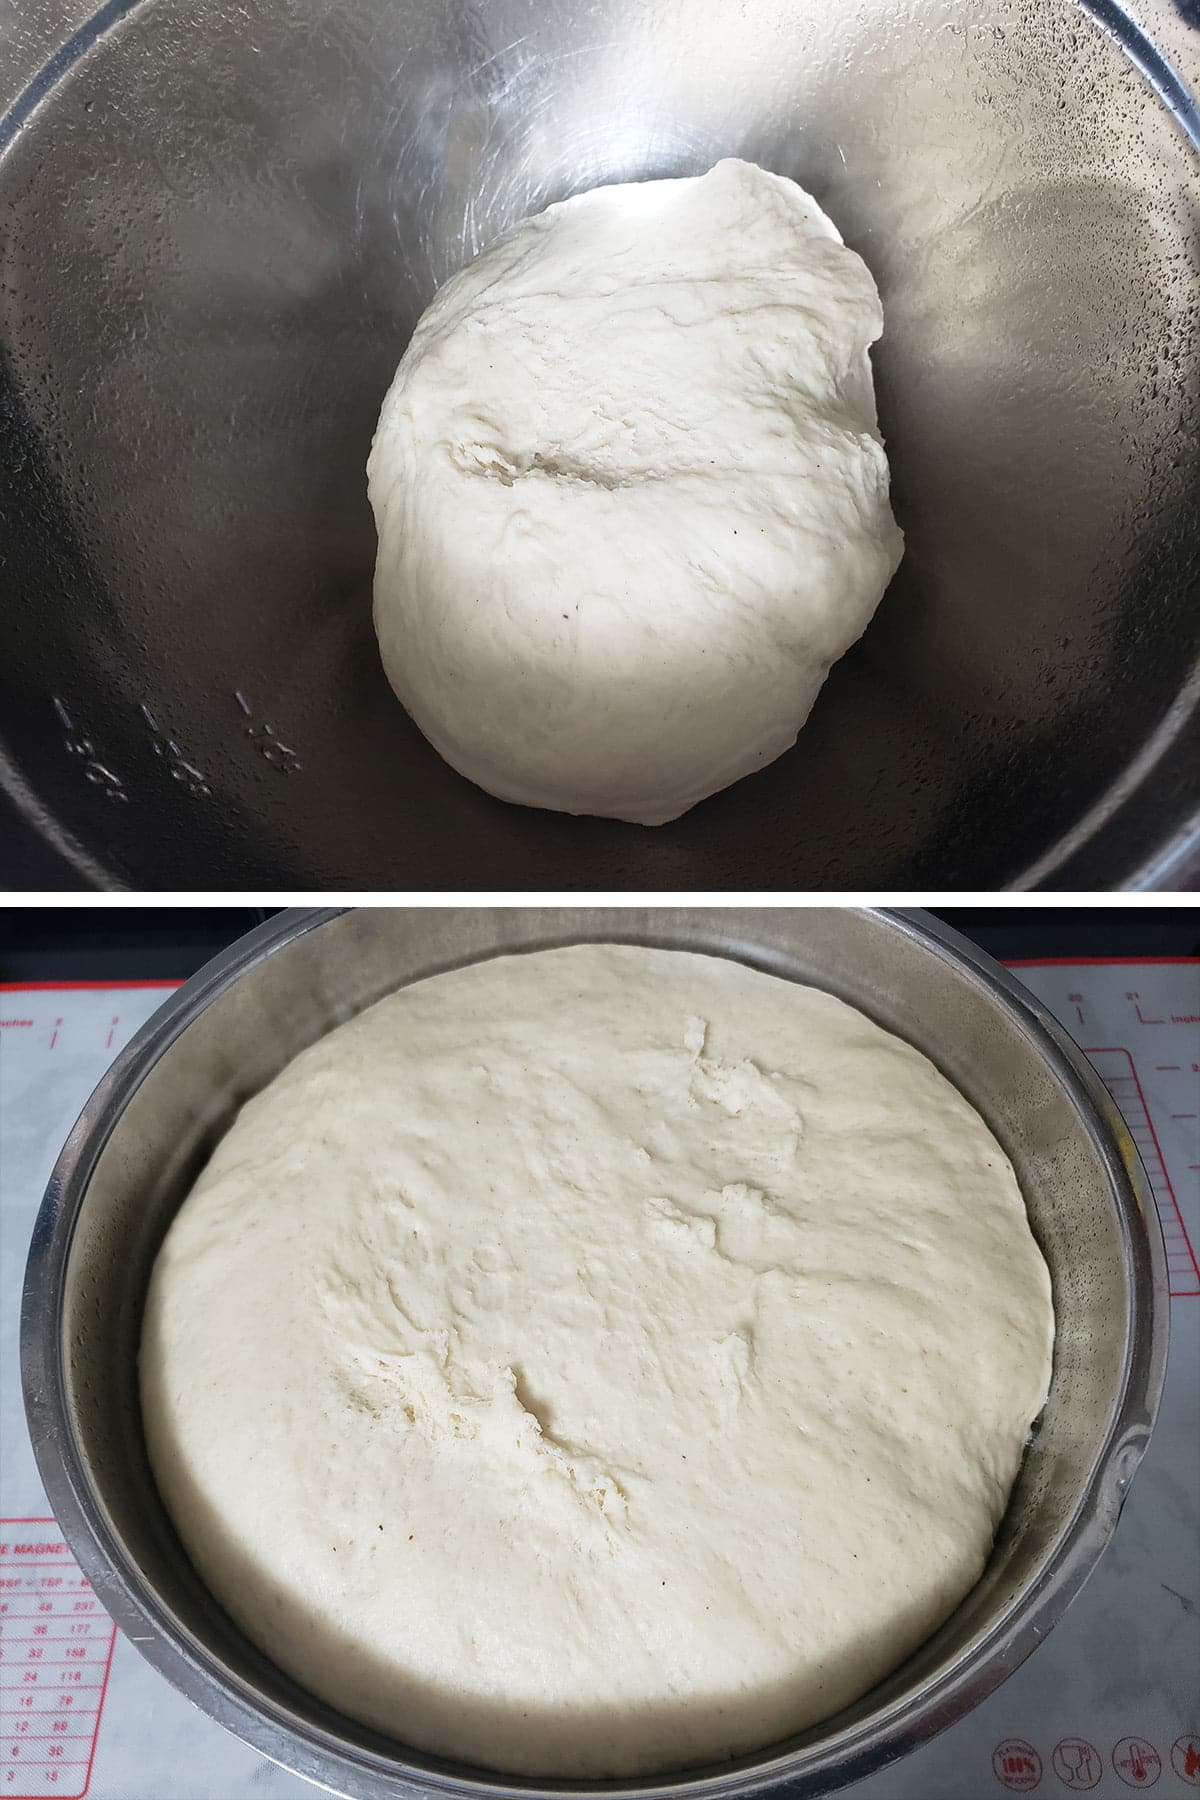 A 2 photo compilation image, showing the dough before and after rising.